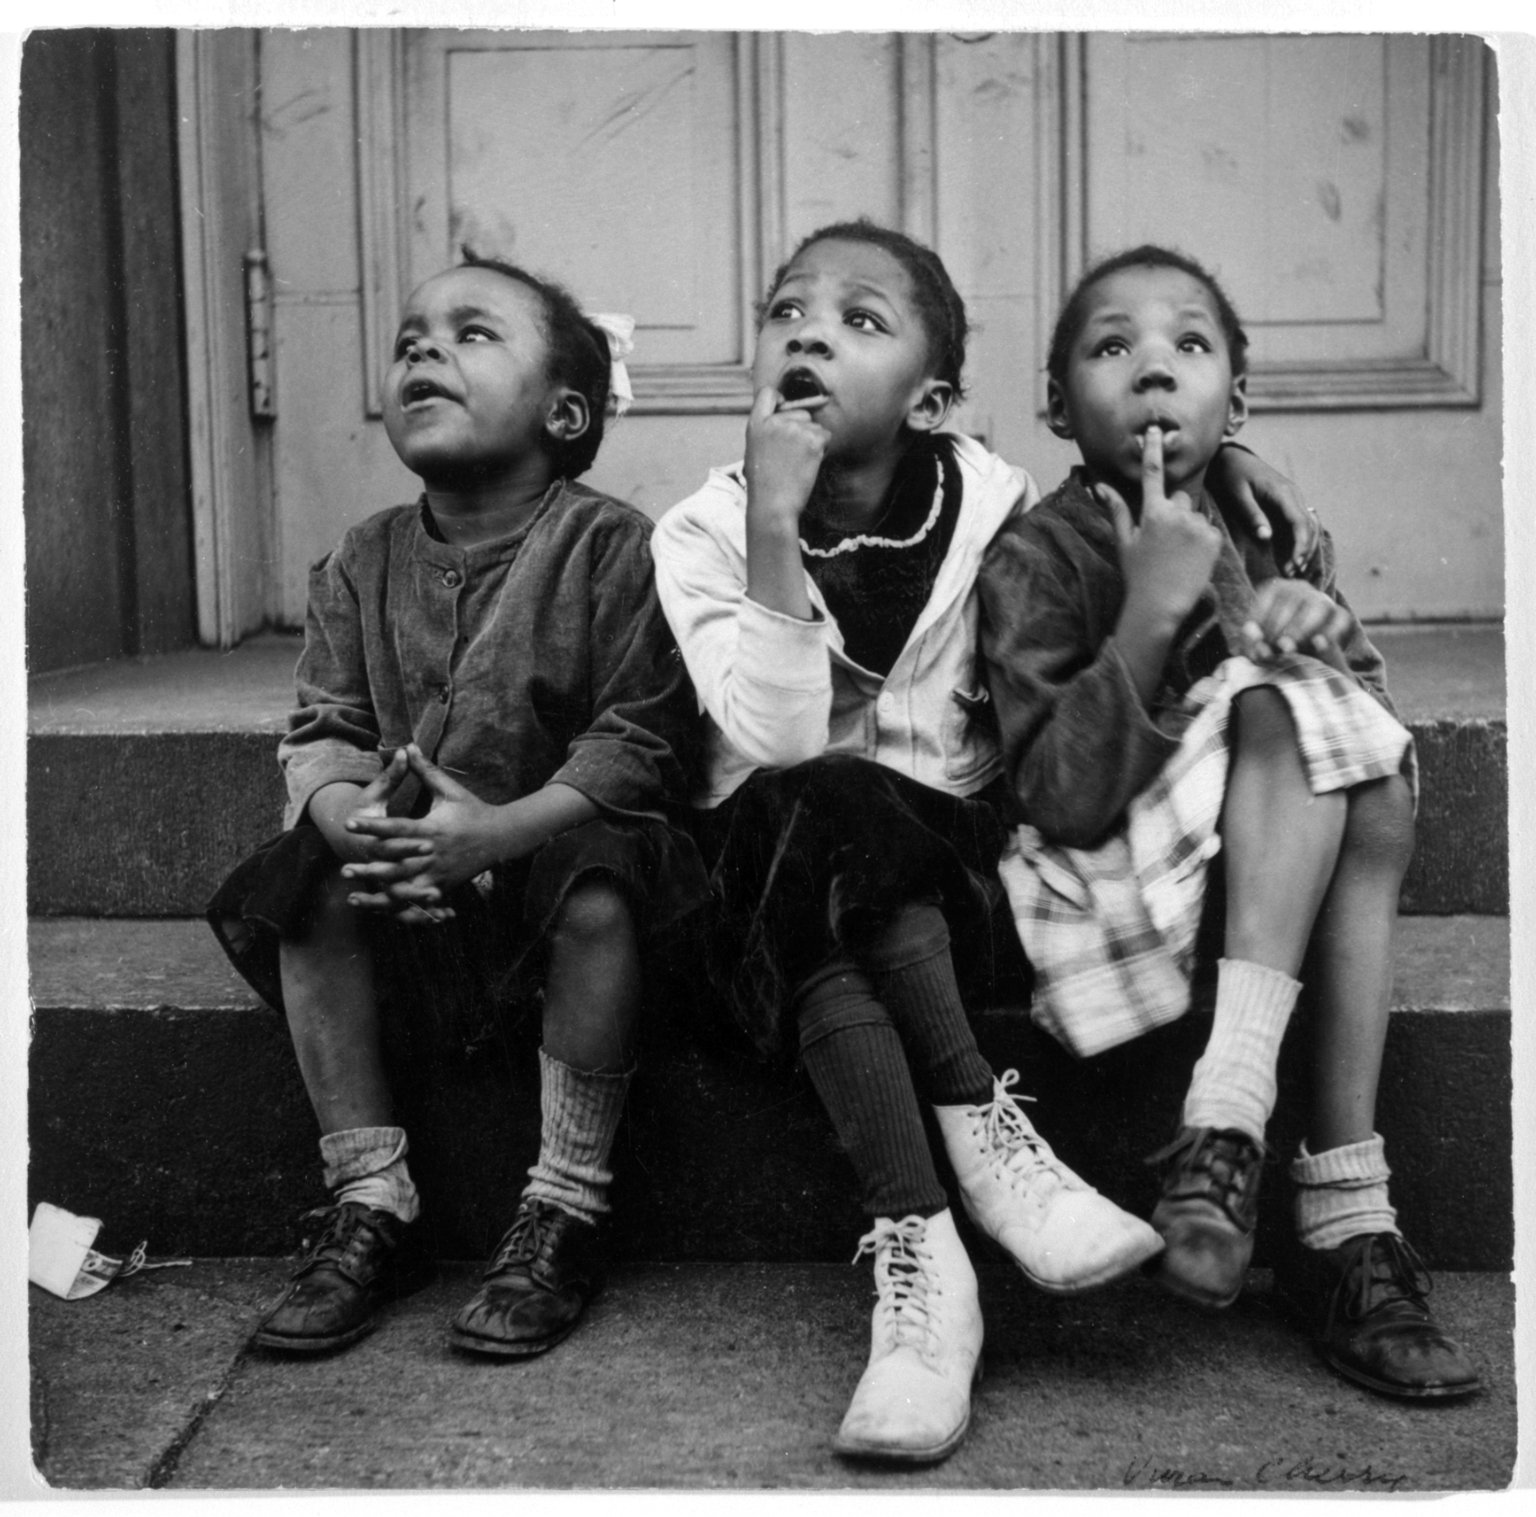 Vivian Cherry (American, born 1920.  Harlem, Watching a Sky Writing Plane,  1952. Gelatin silver photograph, 8 x 8 in. (20.3 x 20.3 cm) Brooklyn Museum. Purchased with funds given by Horace W. Goldsmith Foundation, Harry Kahn, and Mrs. Carl L. Selden, 1994.31.1 ©artist or artist's estate.